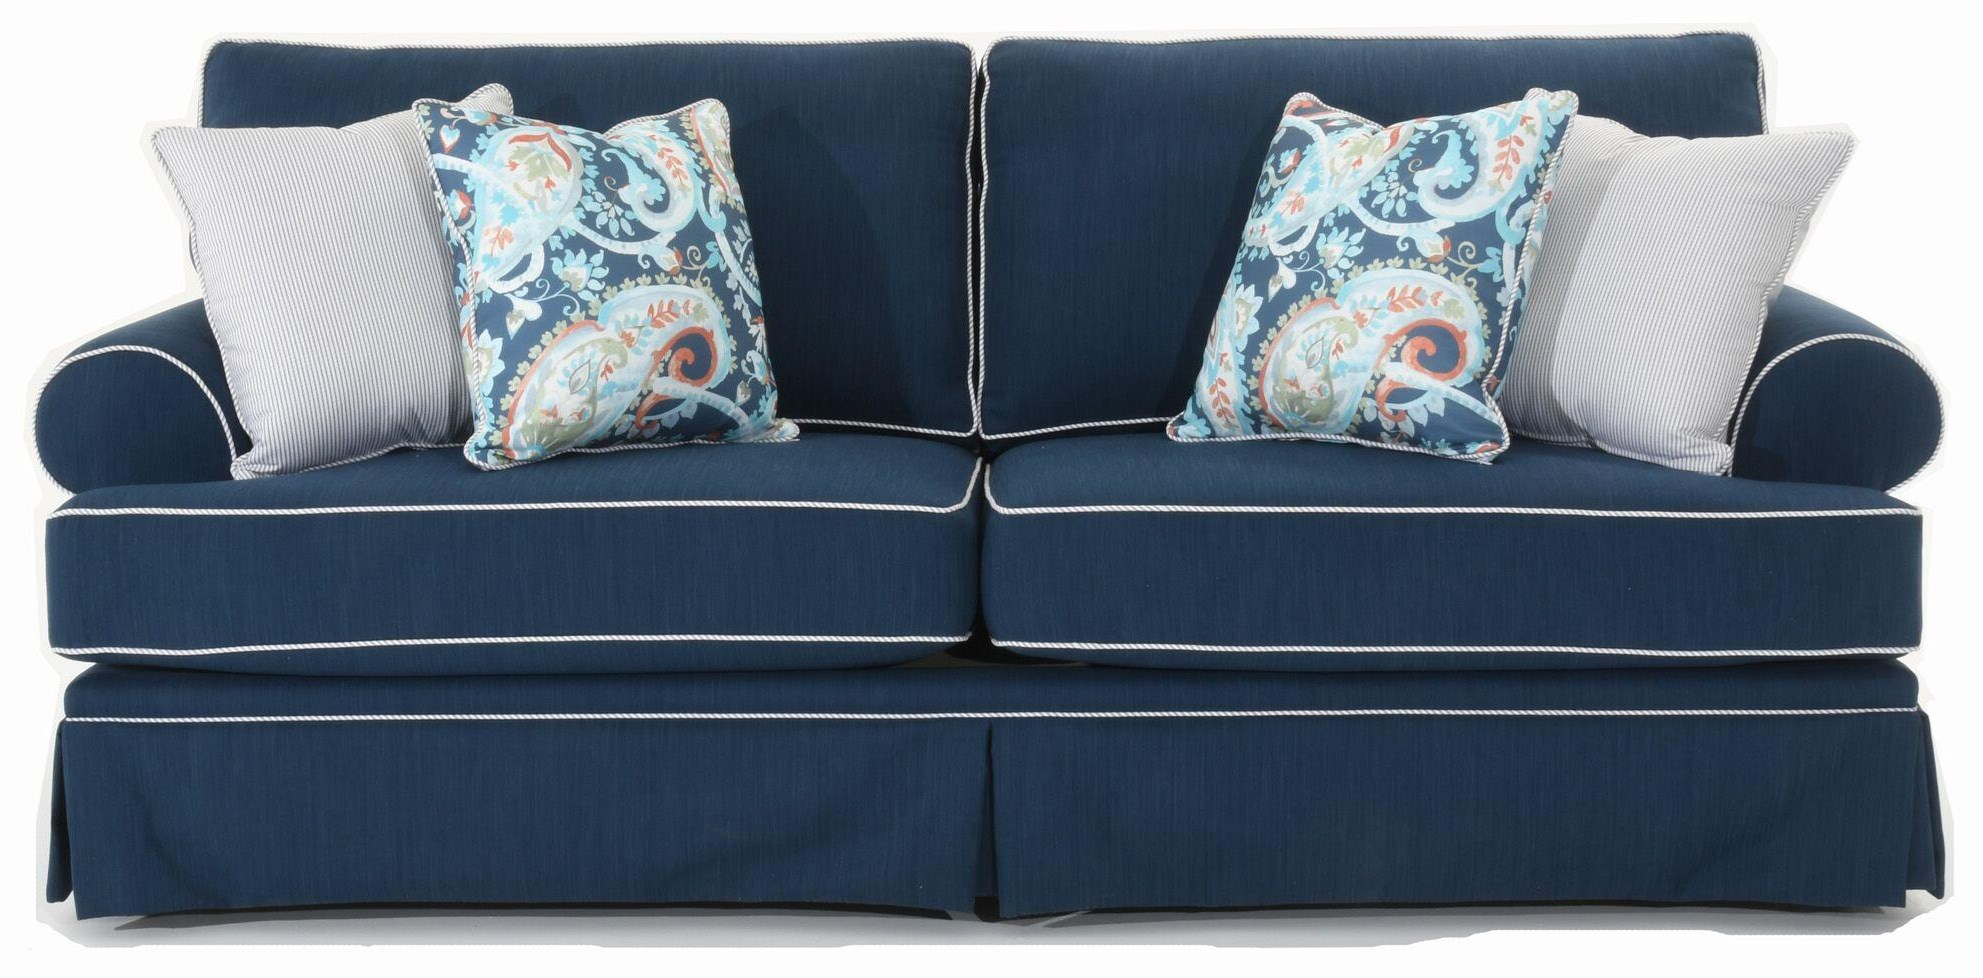 Emily 2-Seat Sofa by Stone & Leigh Furniture at Baer's Furniture